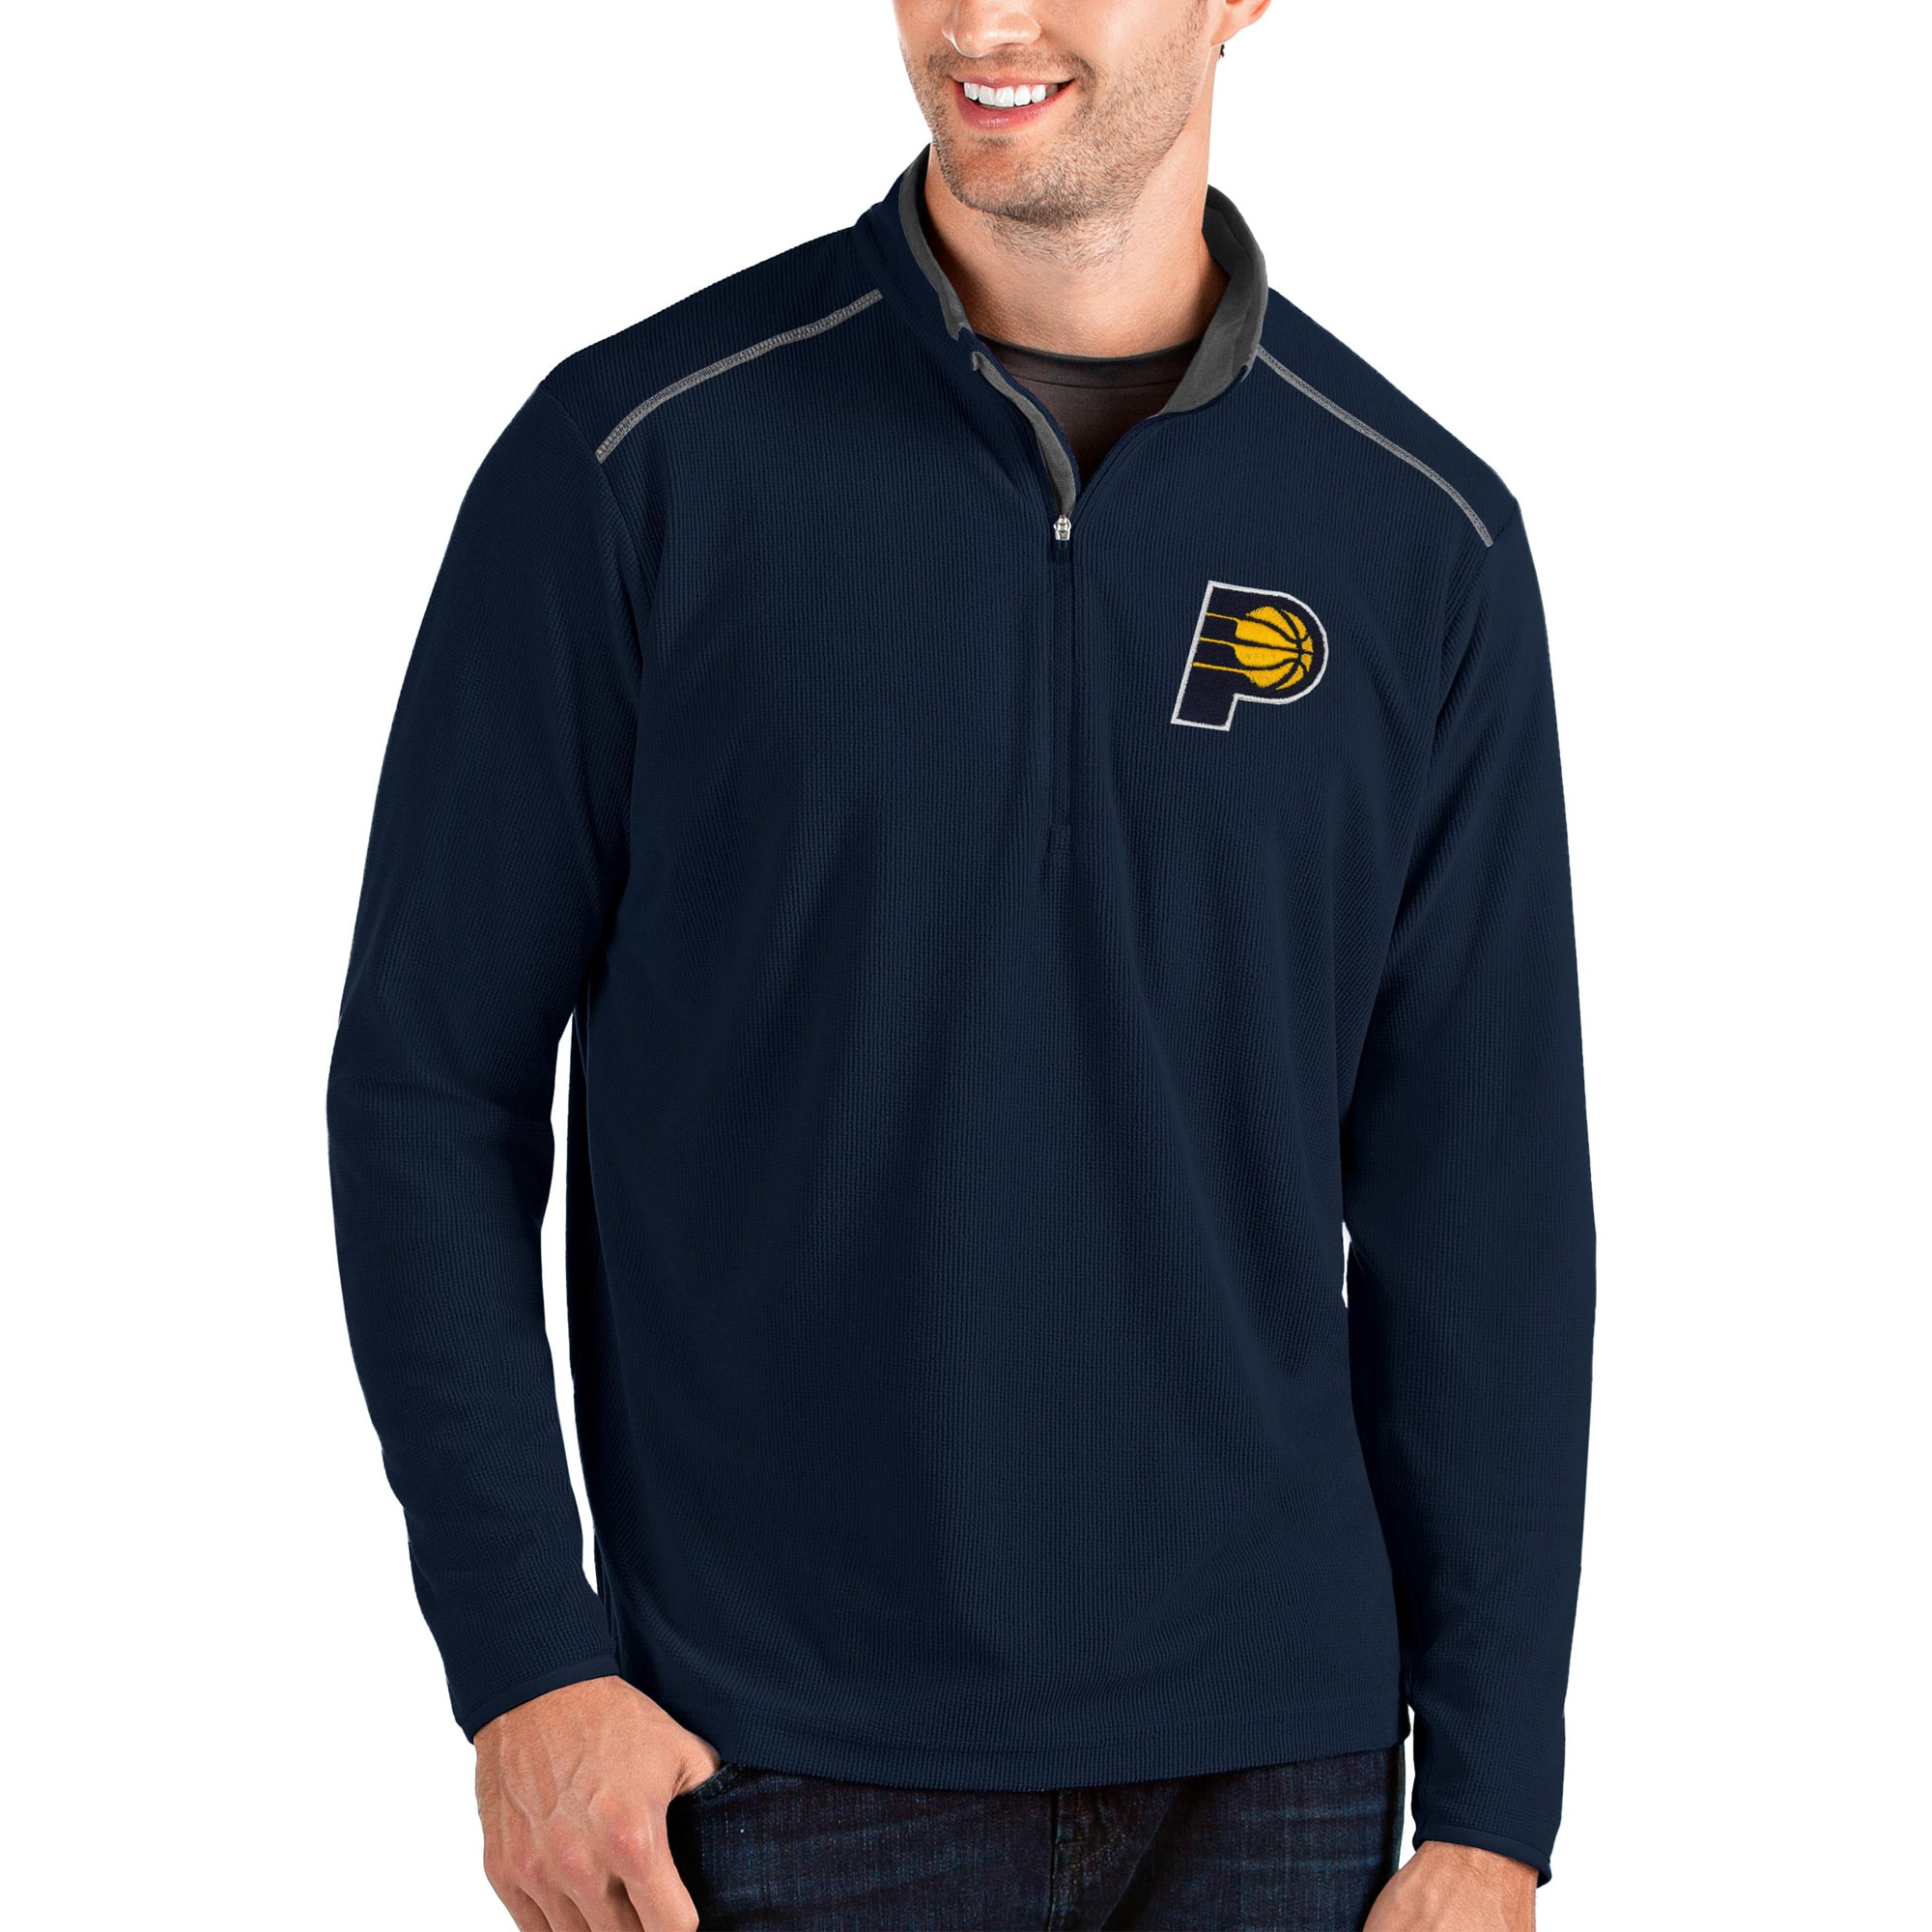 Indiana Pacers Antigua Glacier Quarter-Zip Pullover Jacket - Navy/Gray